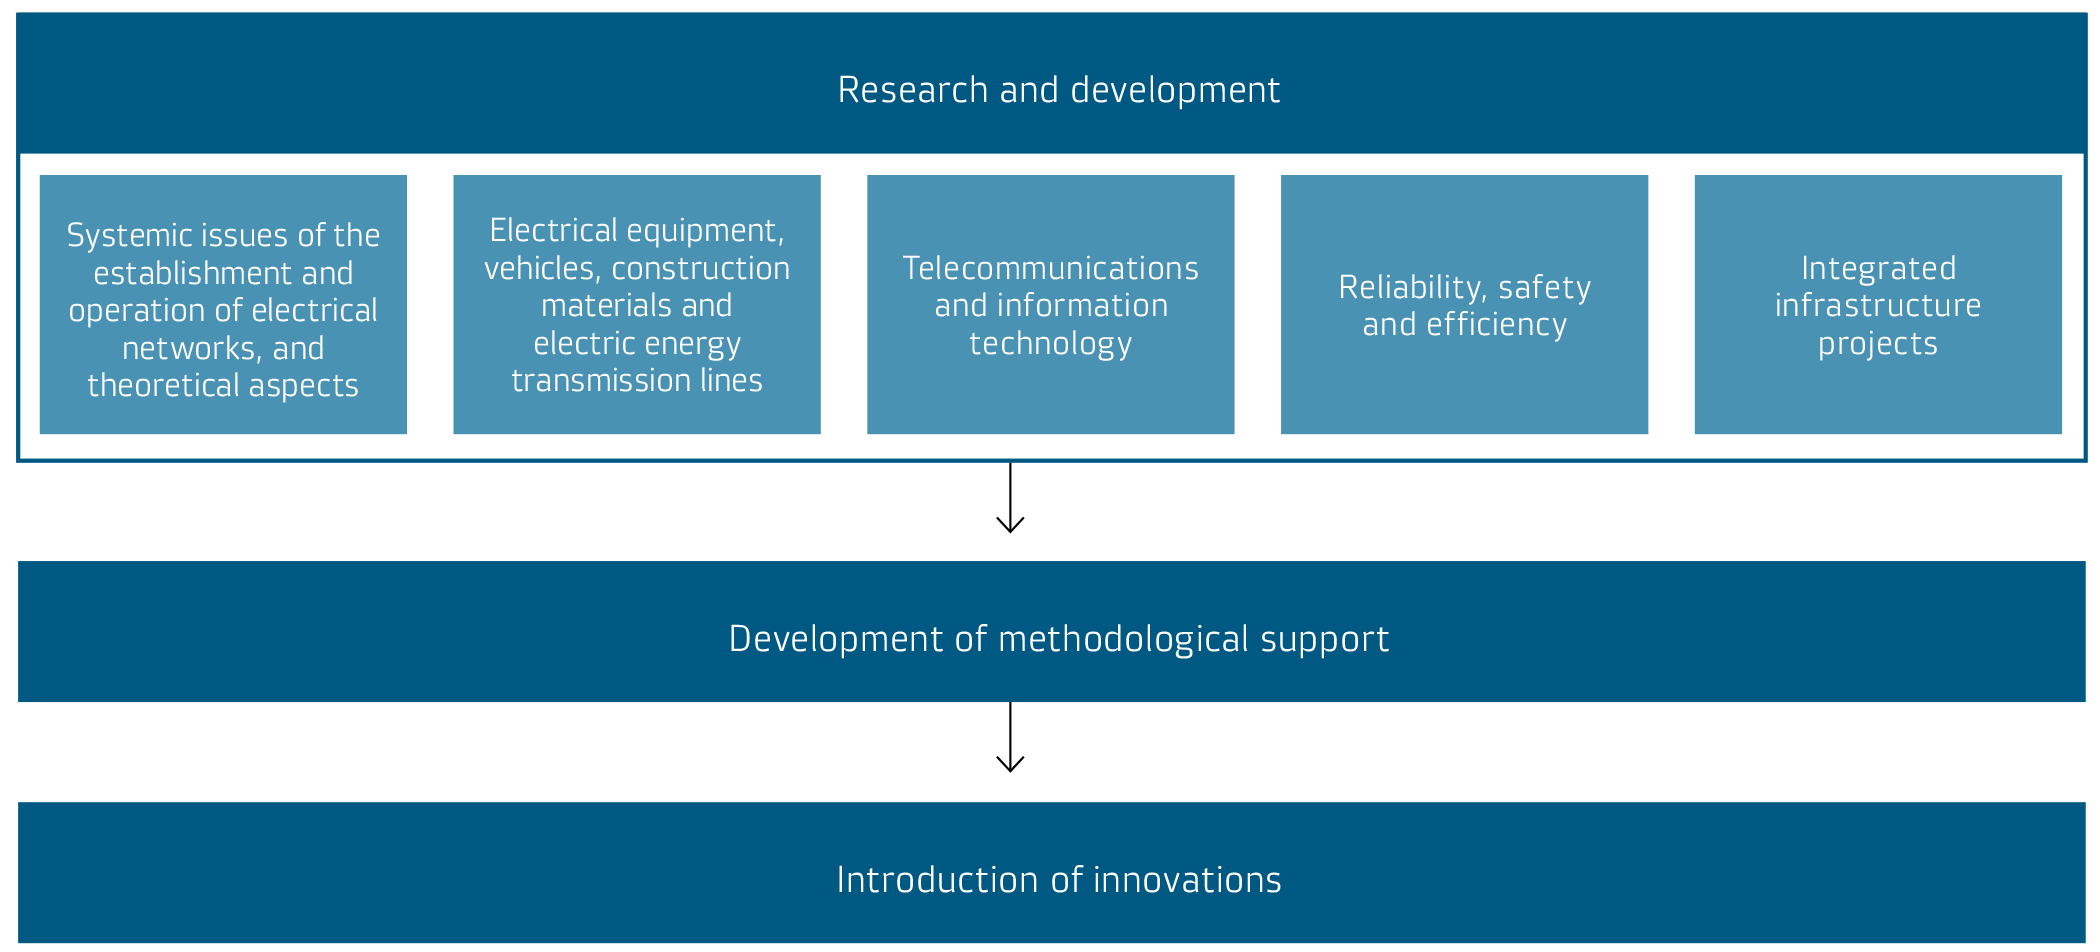 Areas of the Company's innovative development